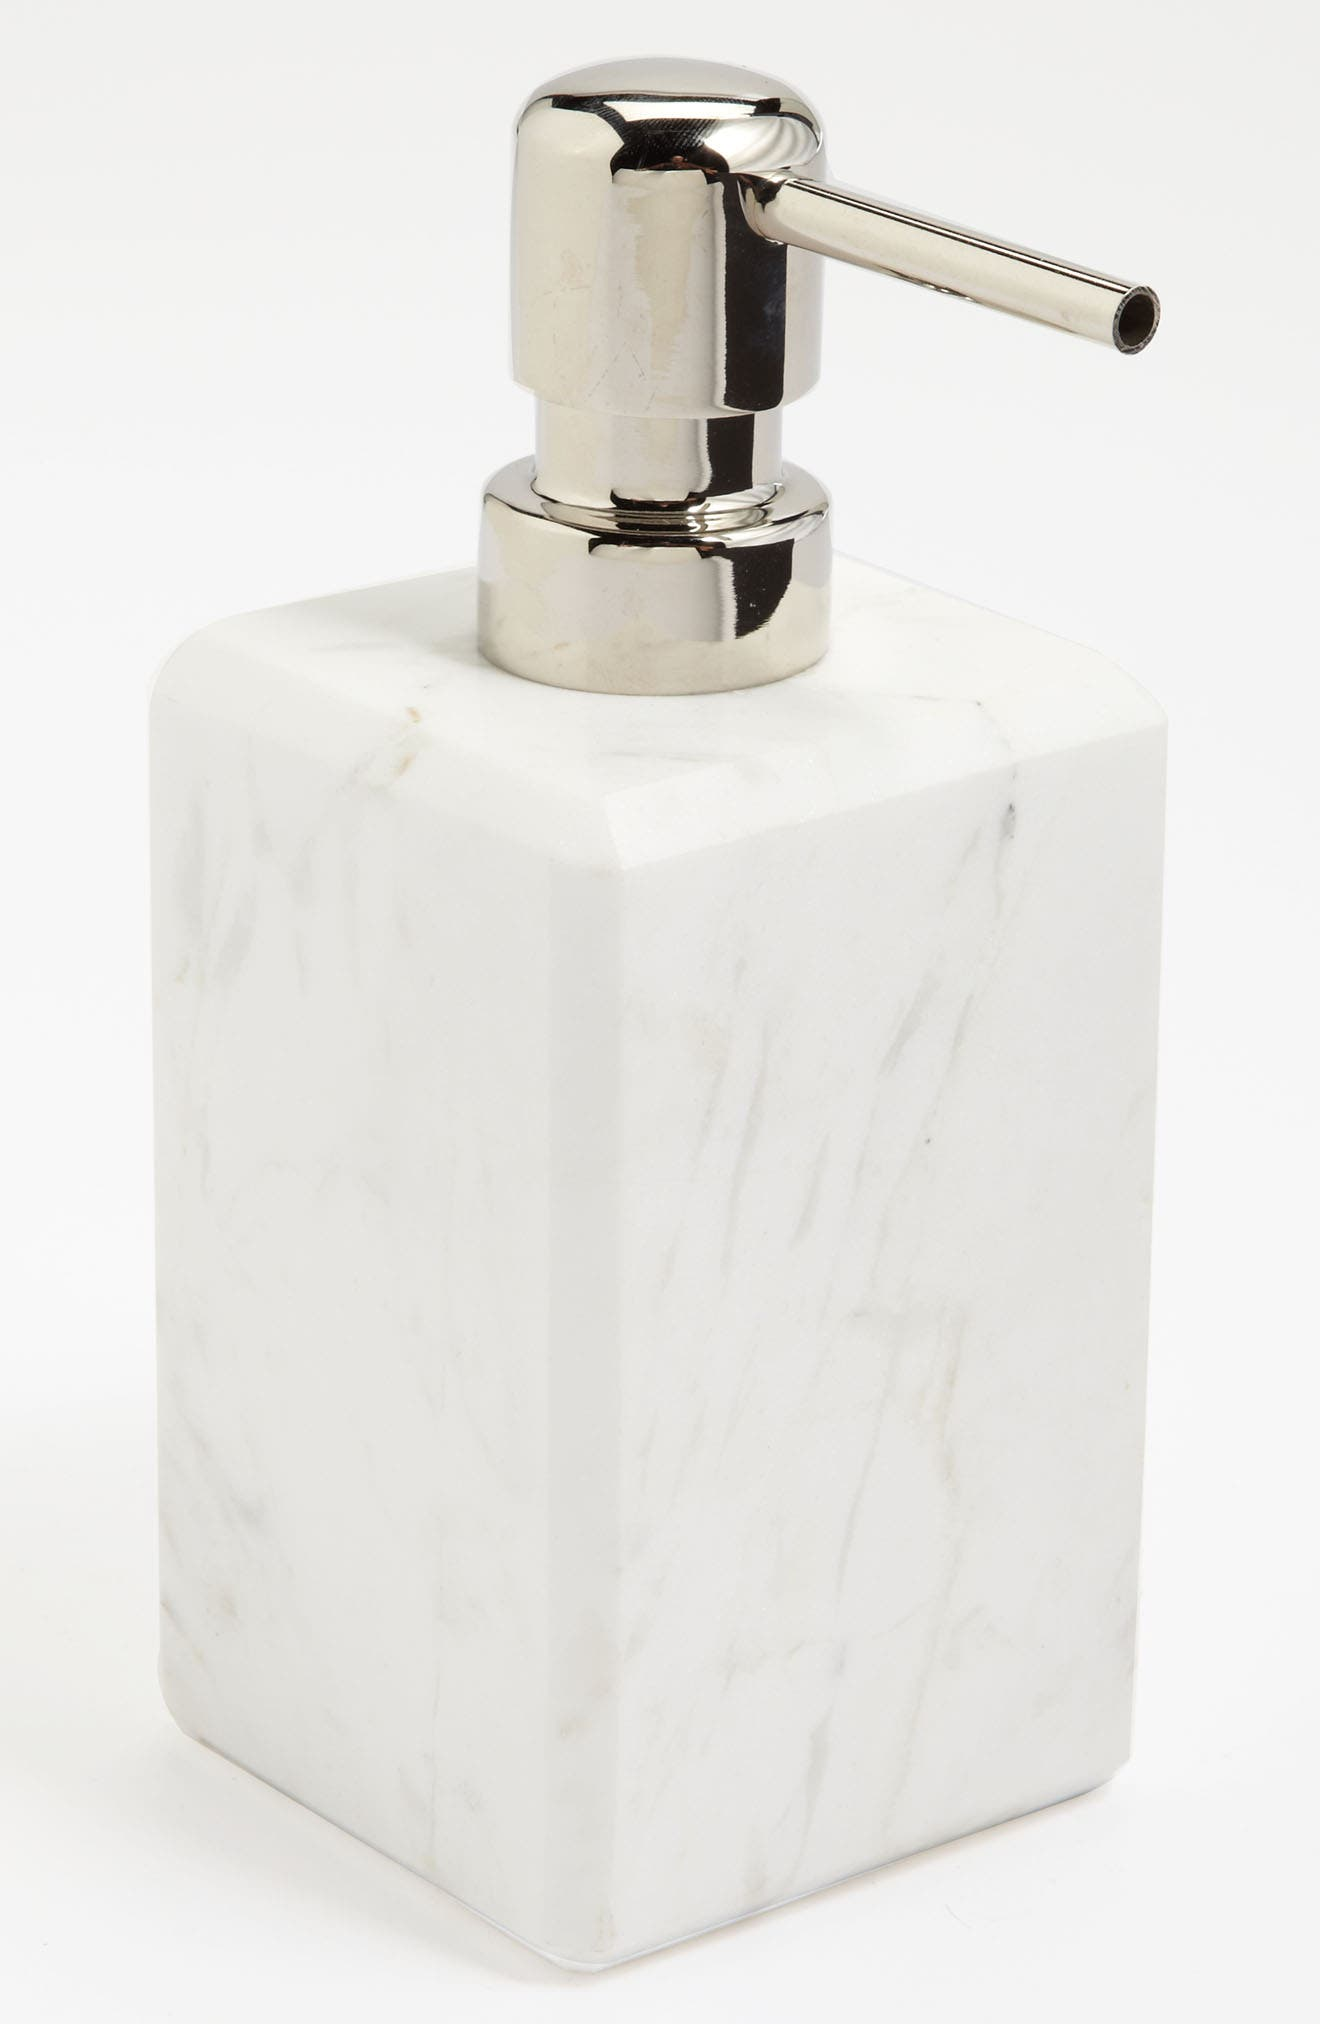 Superbe Waterworks Studio U0027Lunau0027 White Marble Soap Dispenser (Online Only)